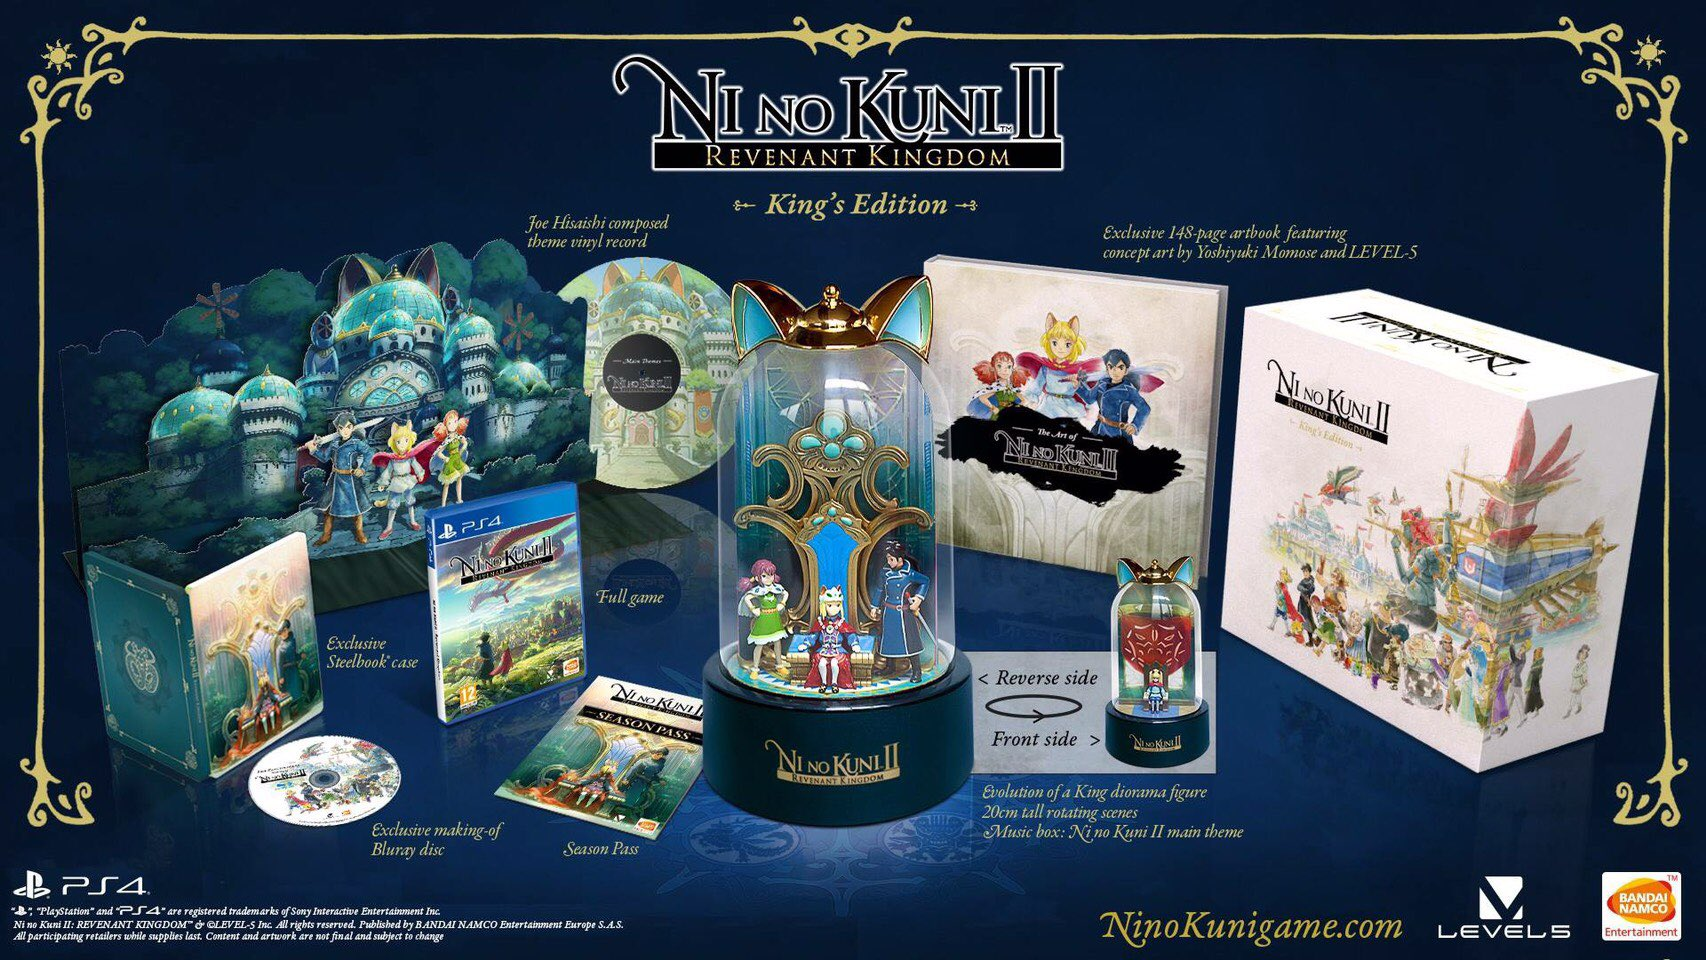 Apparently There Is A Ni No Kuni II Season Pass